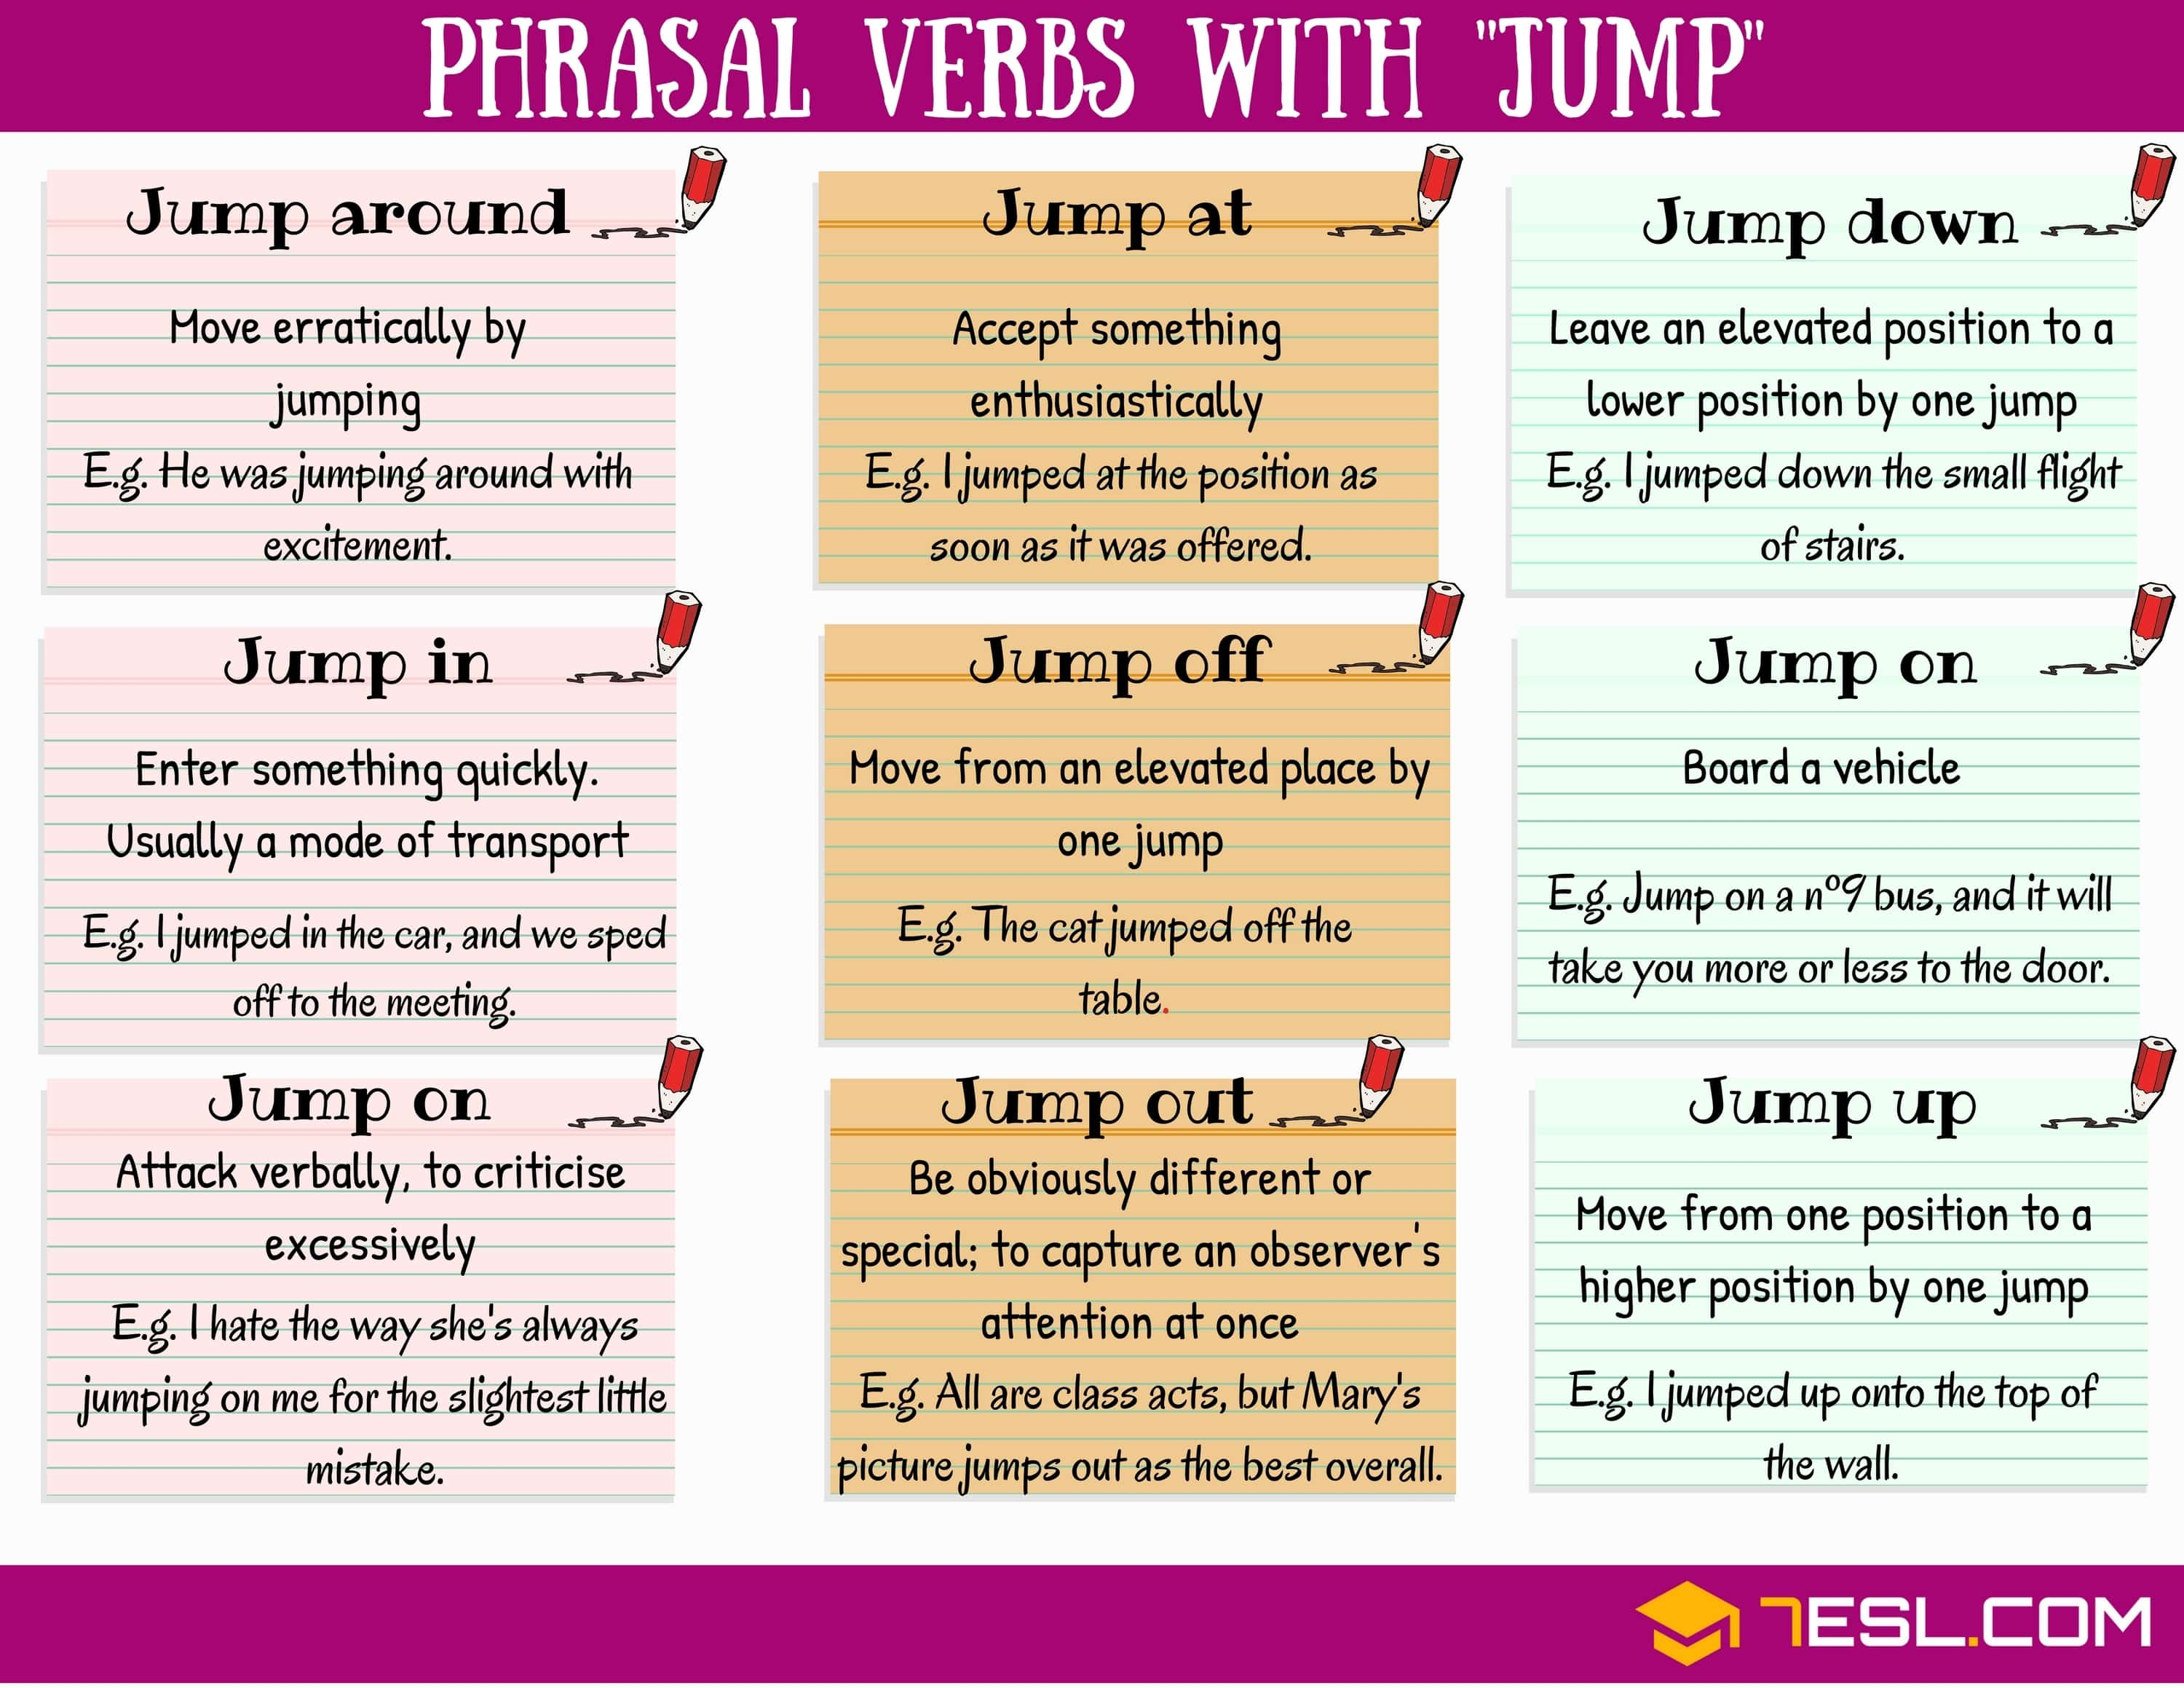 phrasal verbs with JUMP